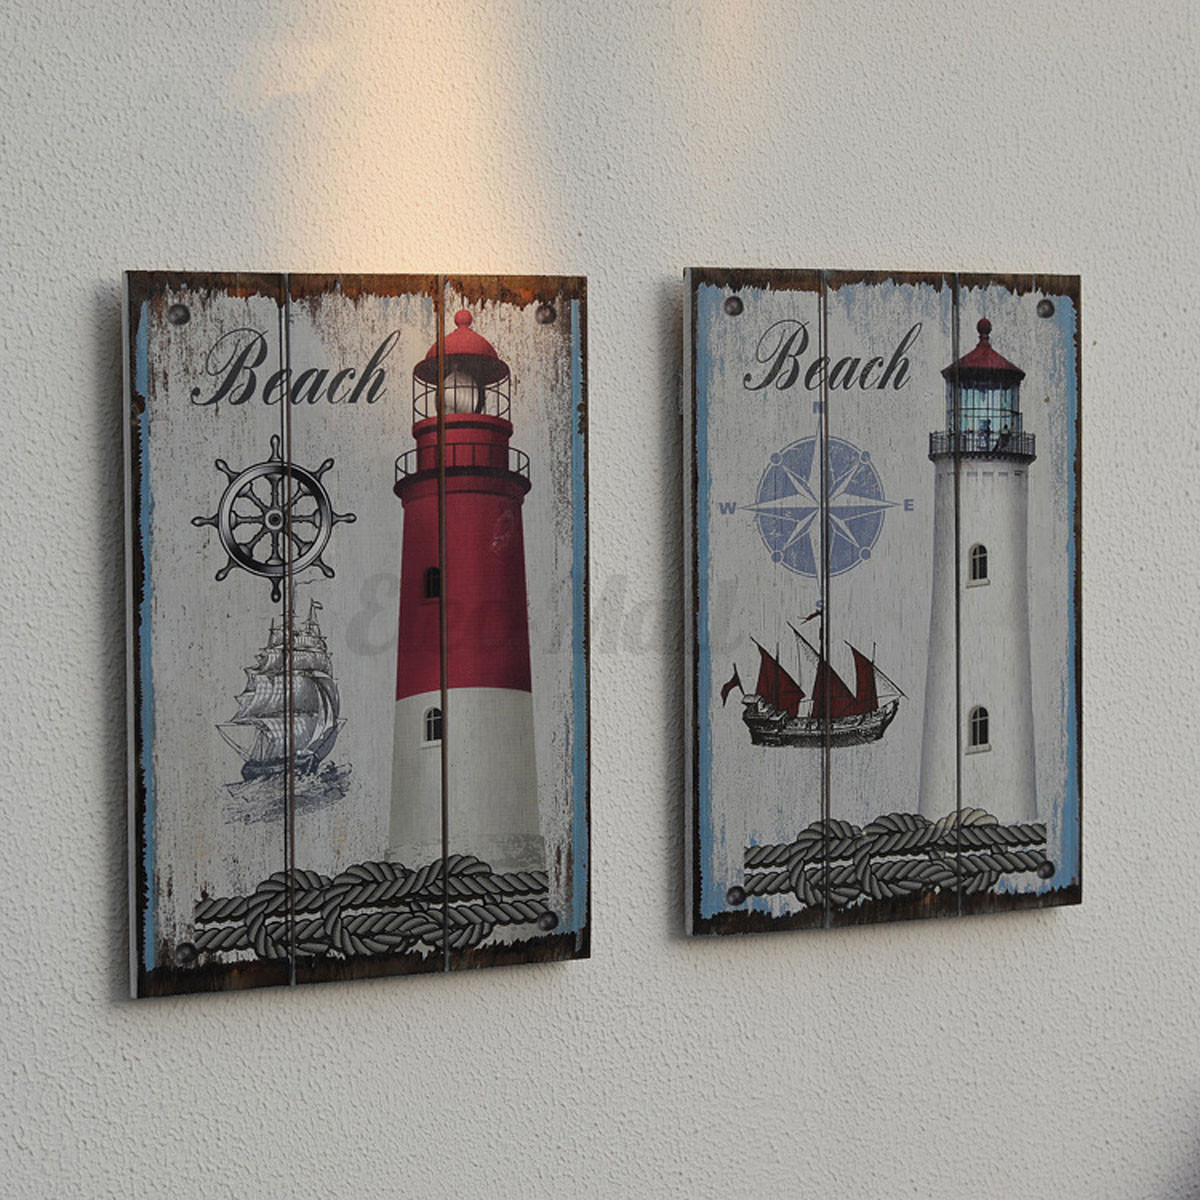 Vintage Wooden Signs Home Decor: Vintage Wood Sign Plaque Cafe Bar Wall Picture Nautical